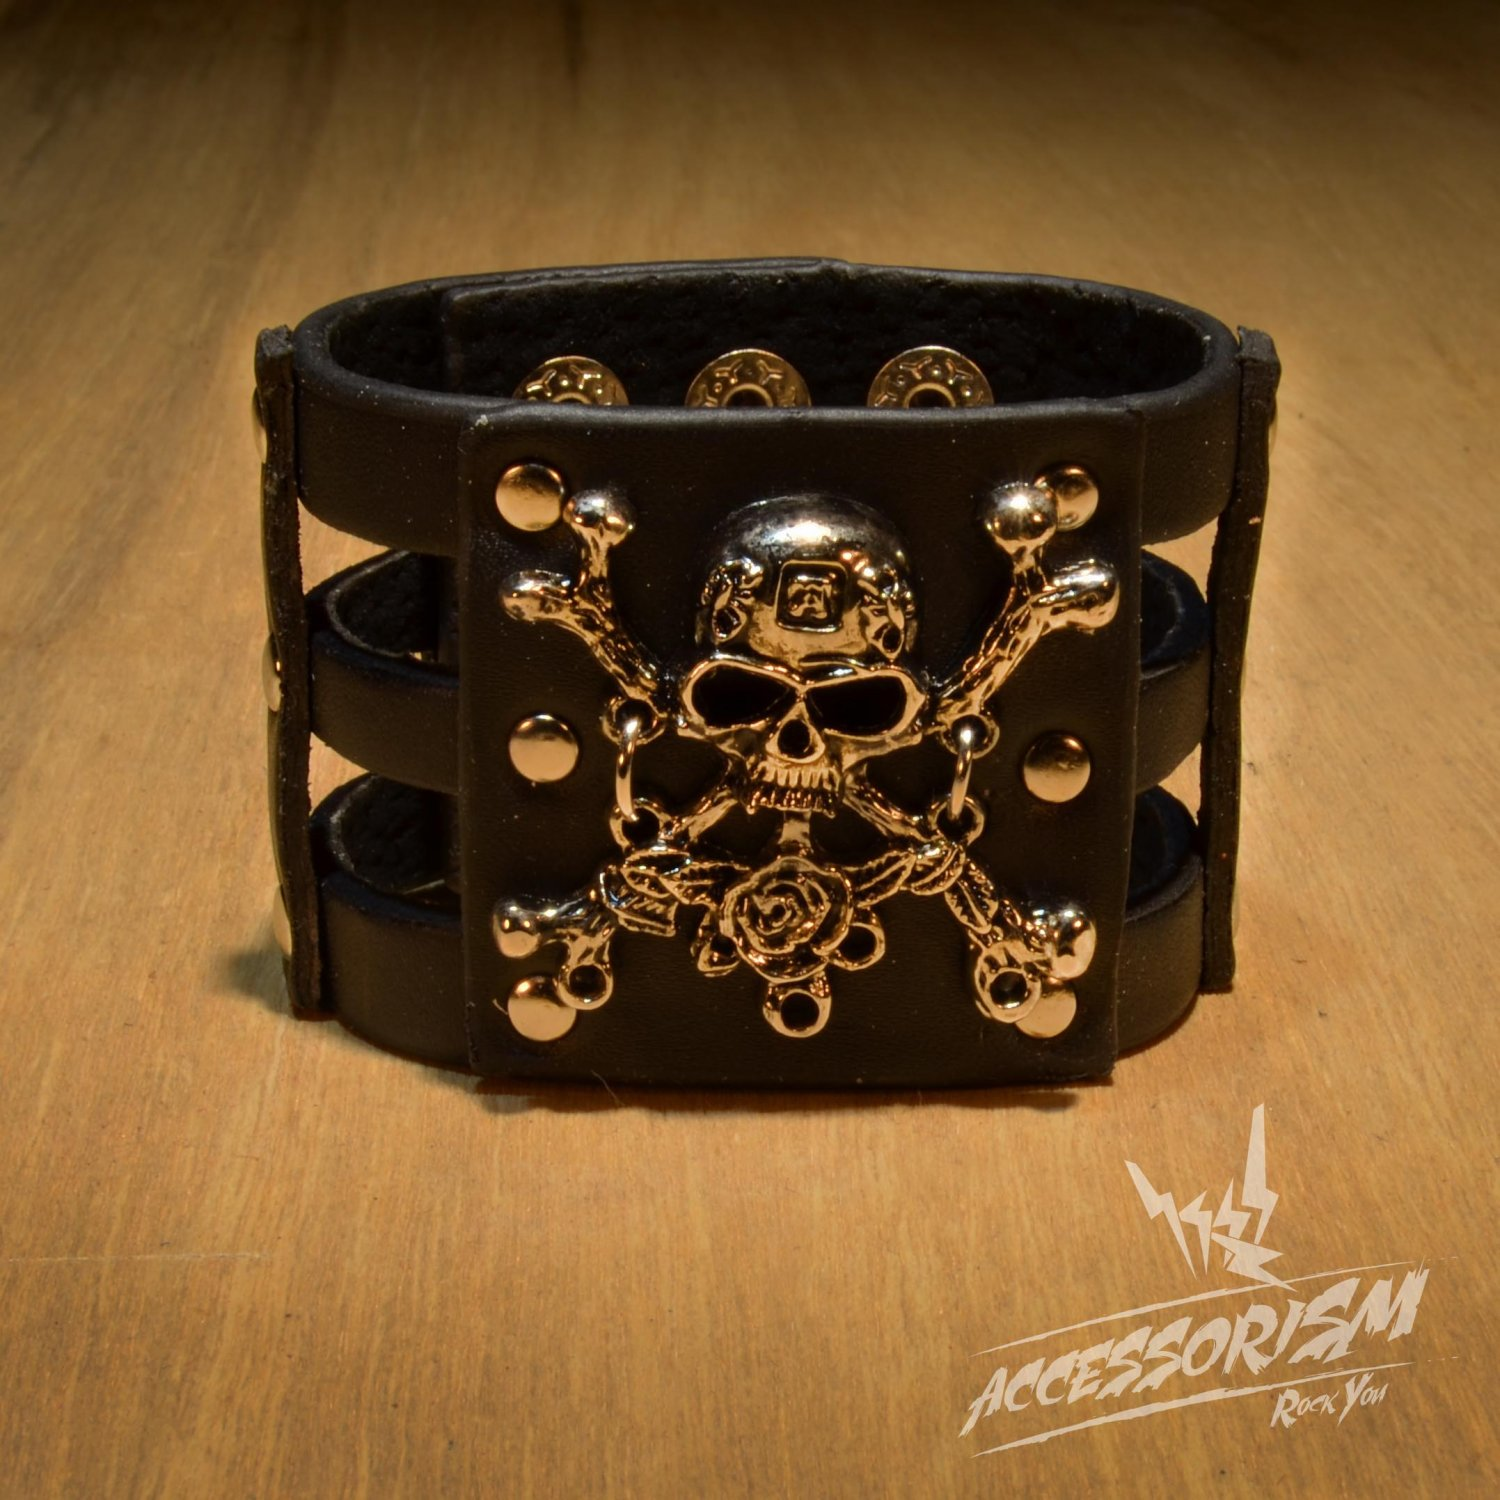 Gothic Skull Crossbones Black Leather Pirate Bracelet (B615RB)